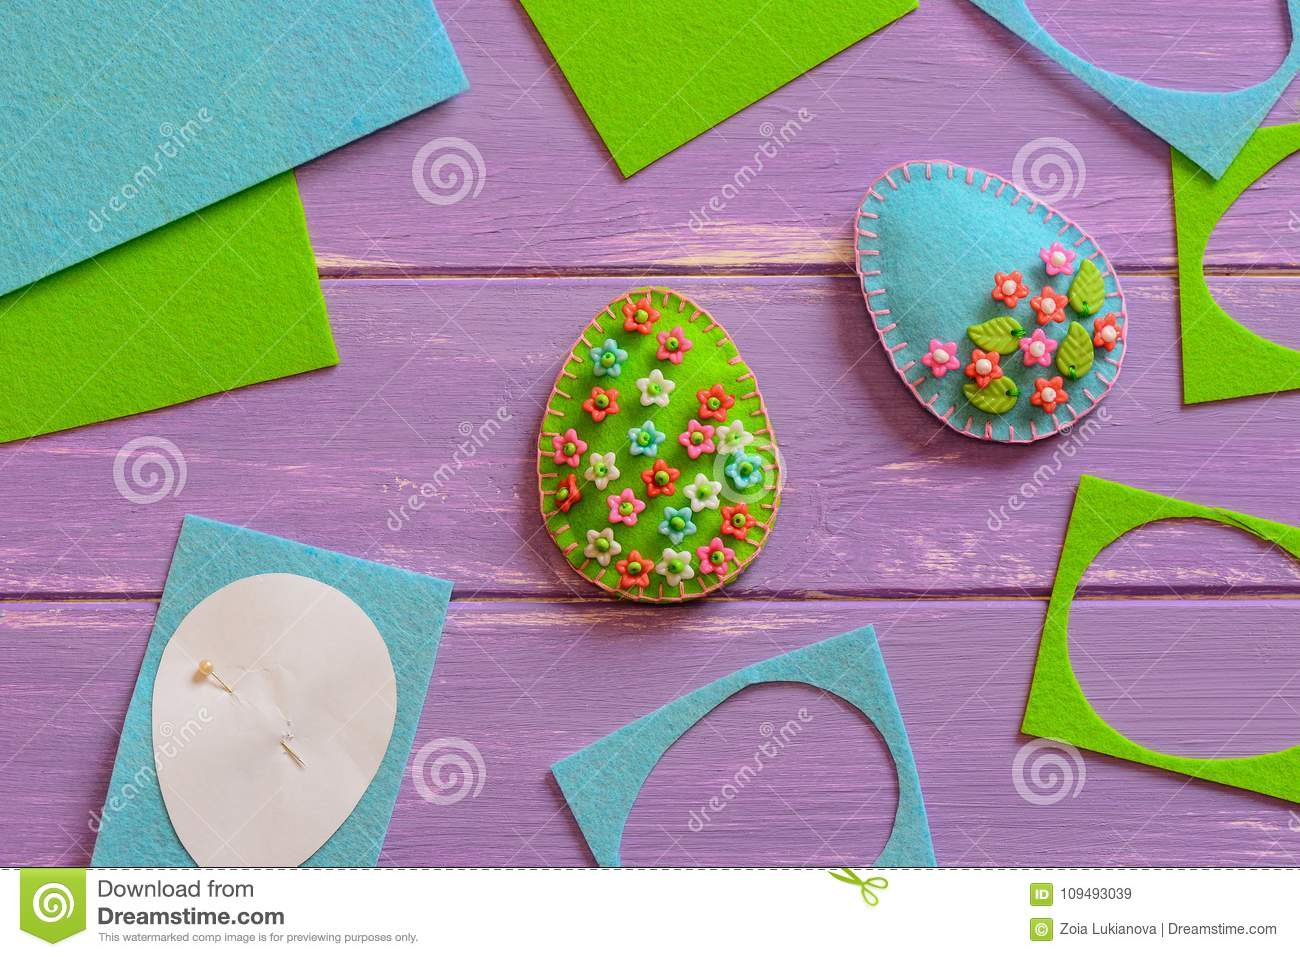 Art Easter Egg Ornaments With Plastic Flowers And Leaves Felt Eggs